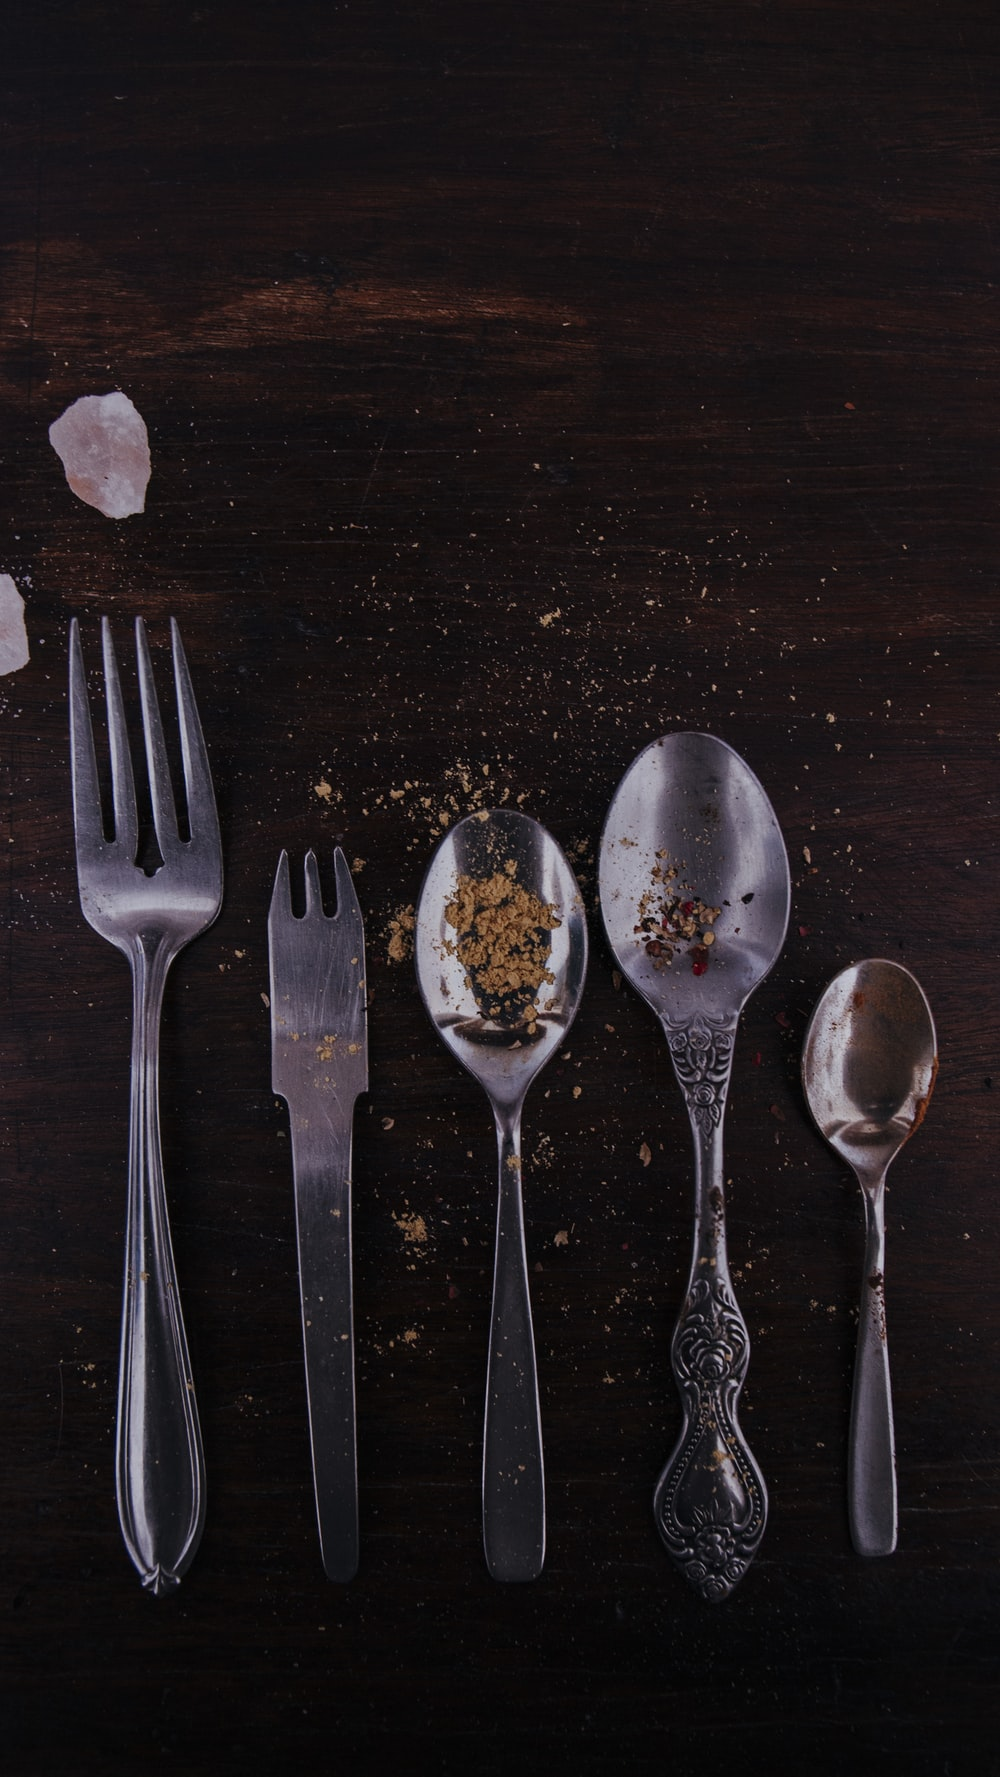 stainless steel spoons and fork on brown wooden table